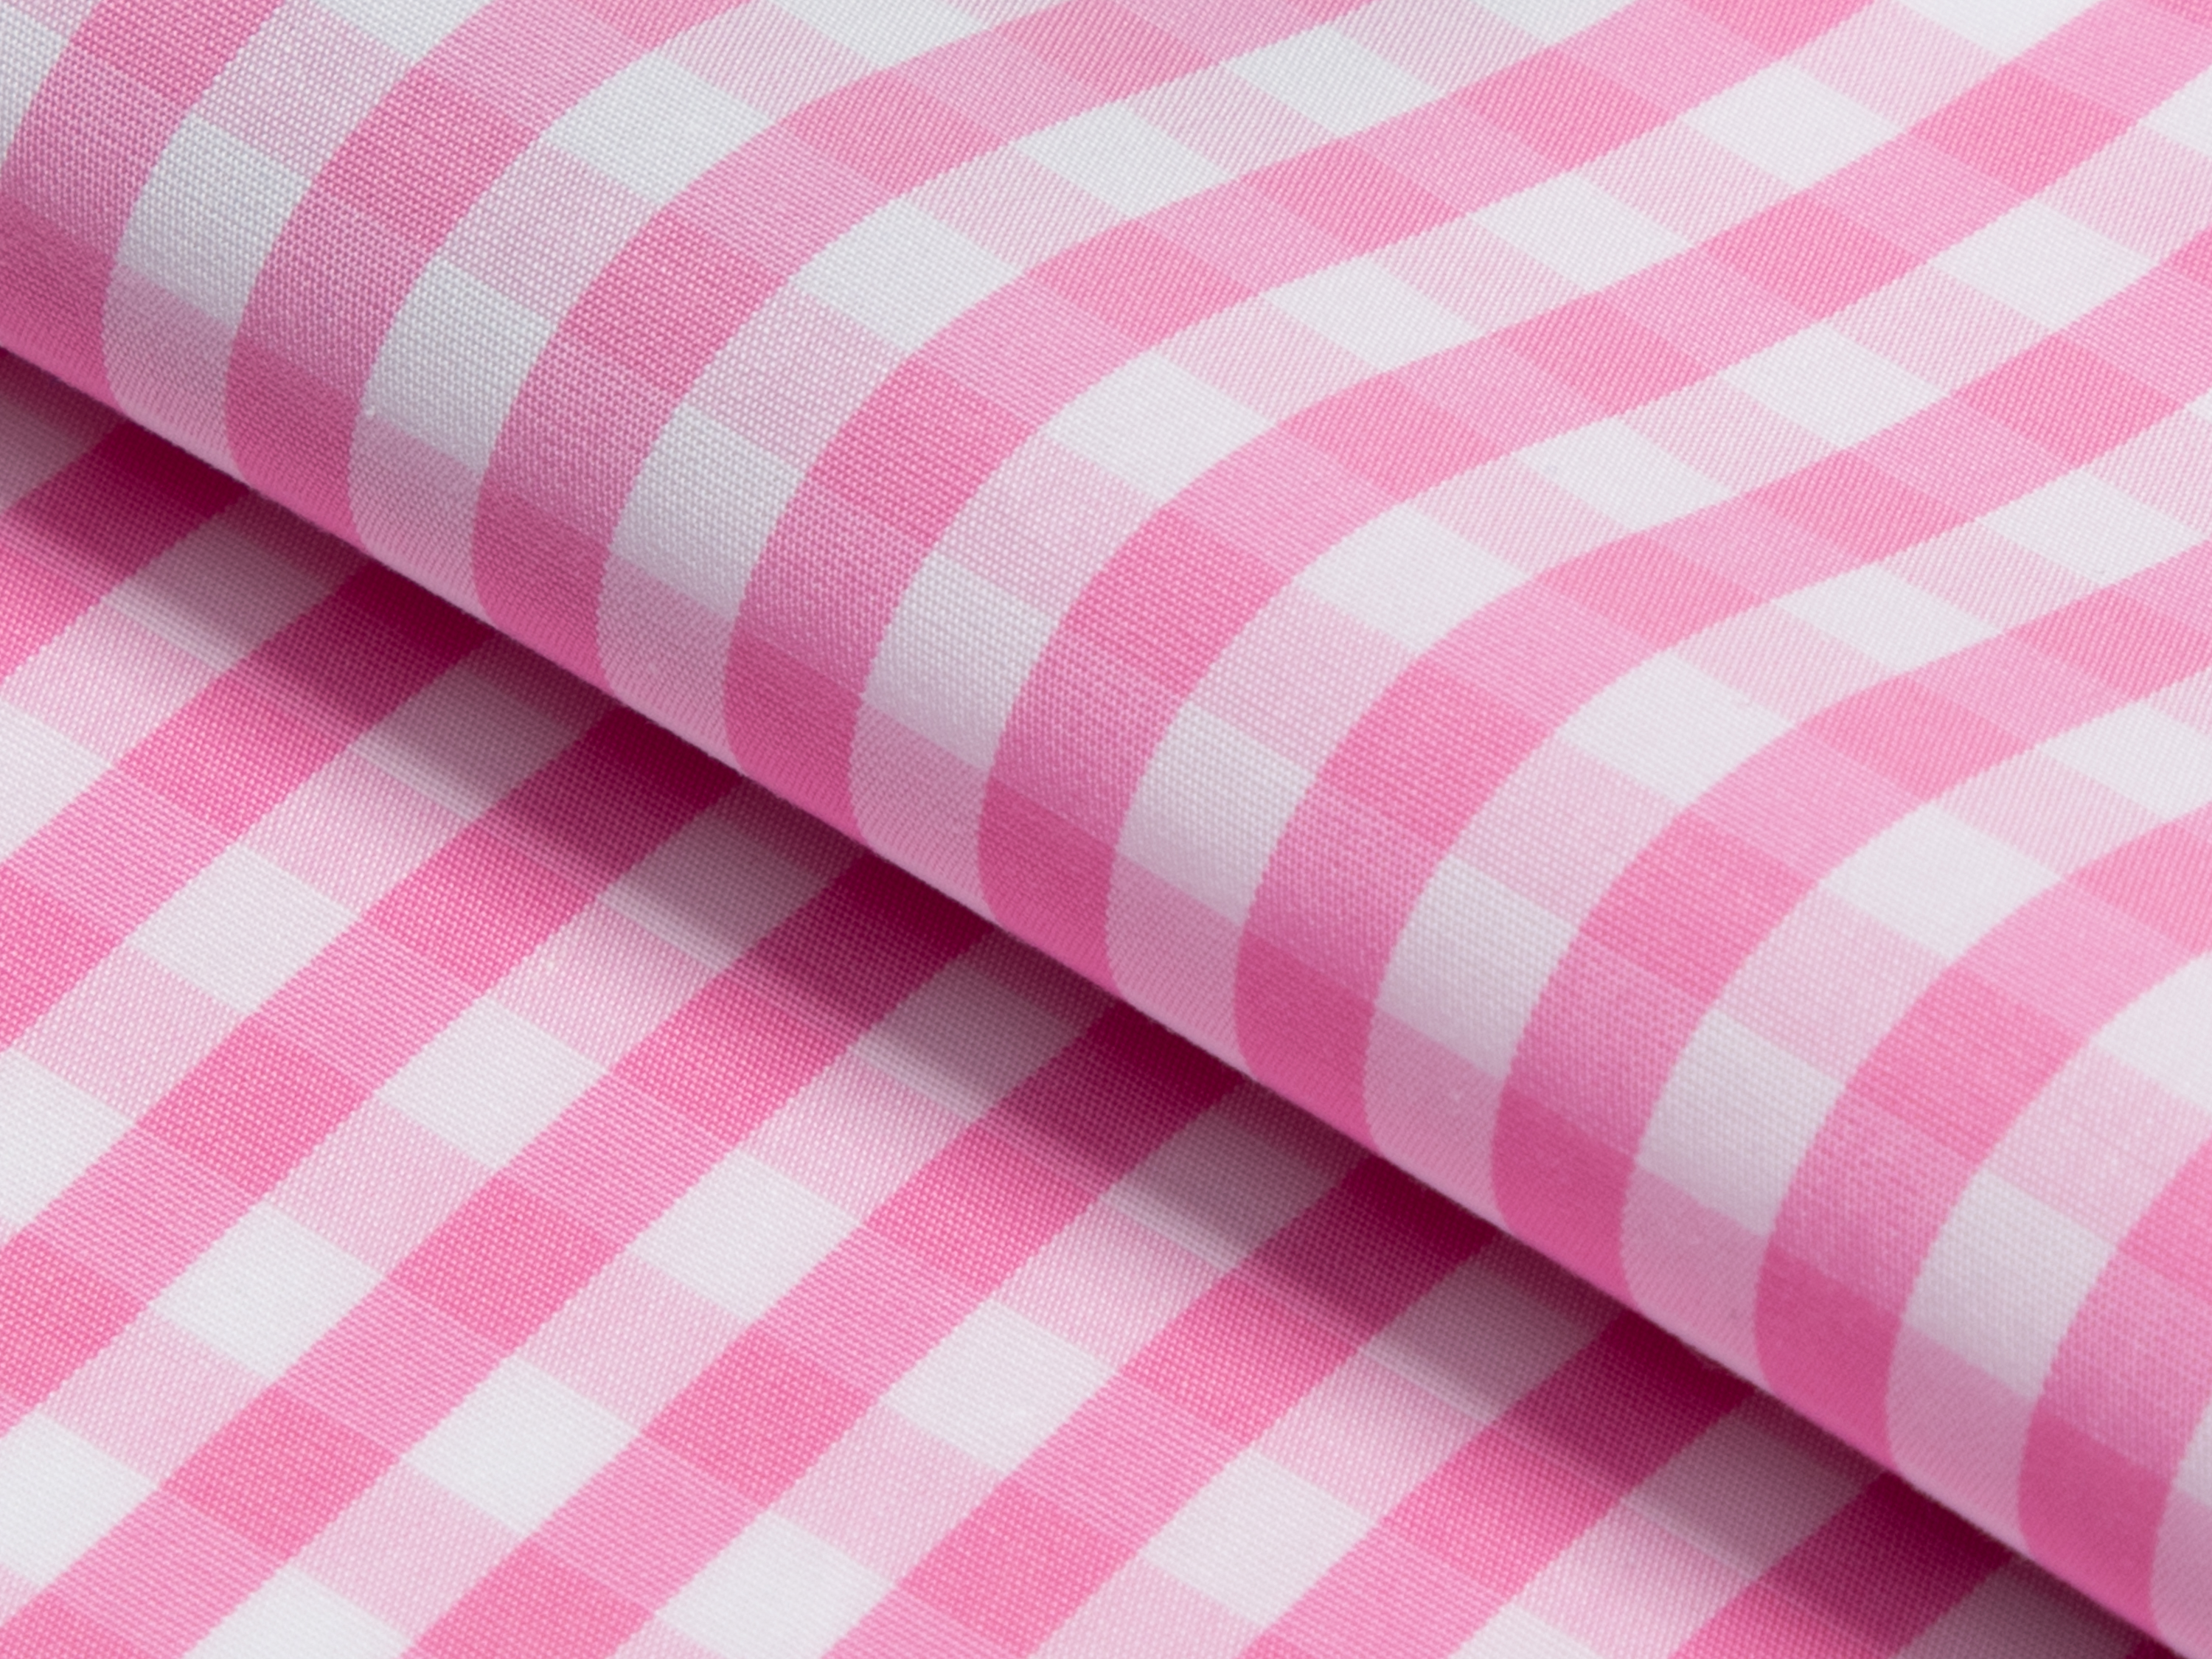 Buy tailor made shirts online - GINGHAM LUXURY (NEW) - Gingham Pink